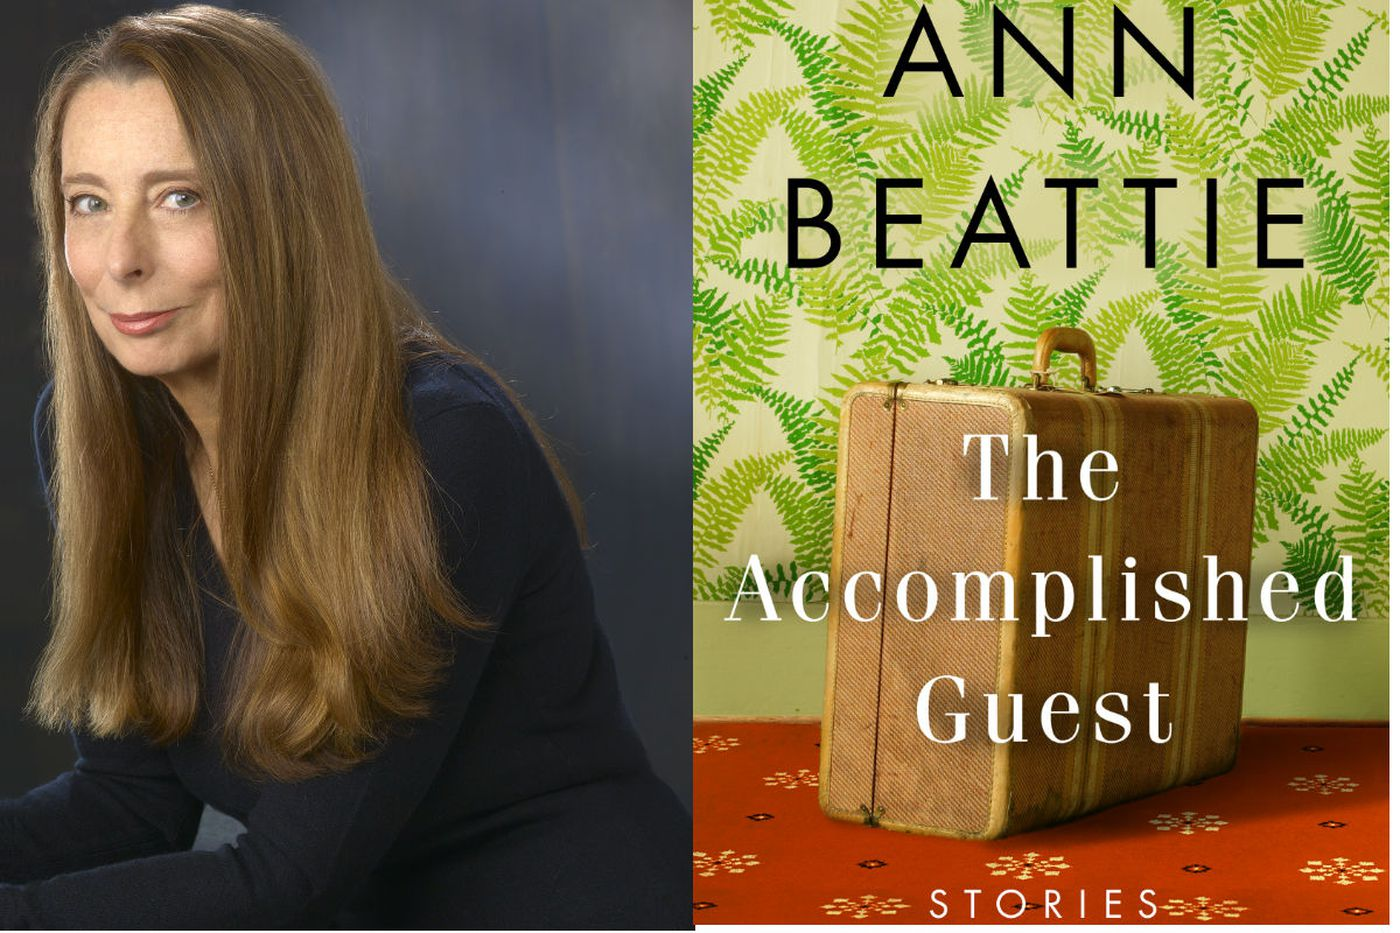 Ann Beattie: Master of the contemporary story